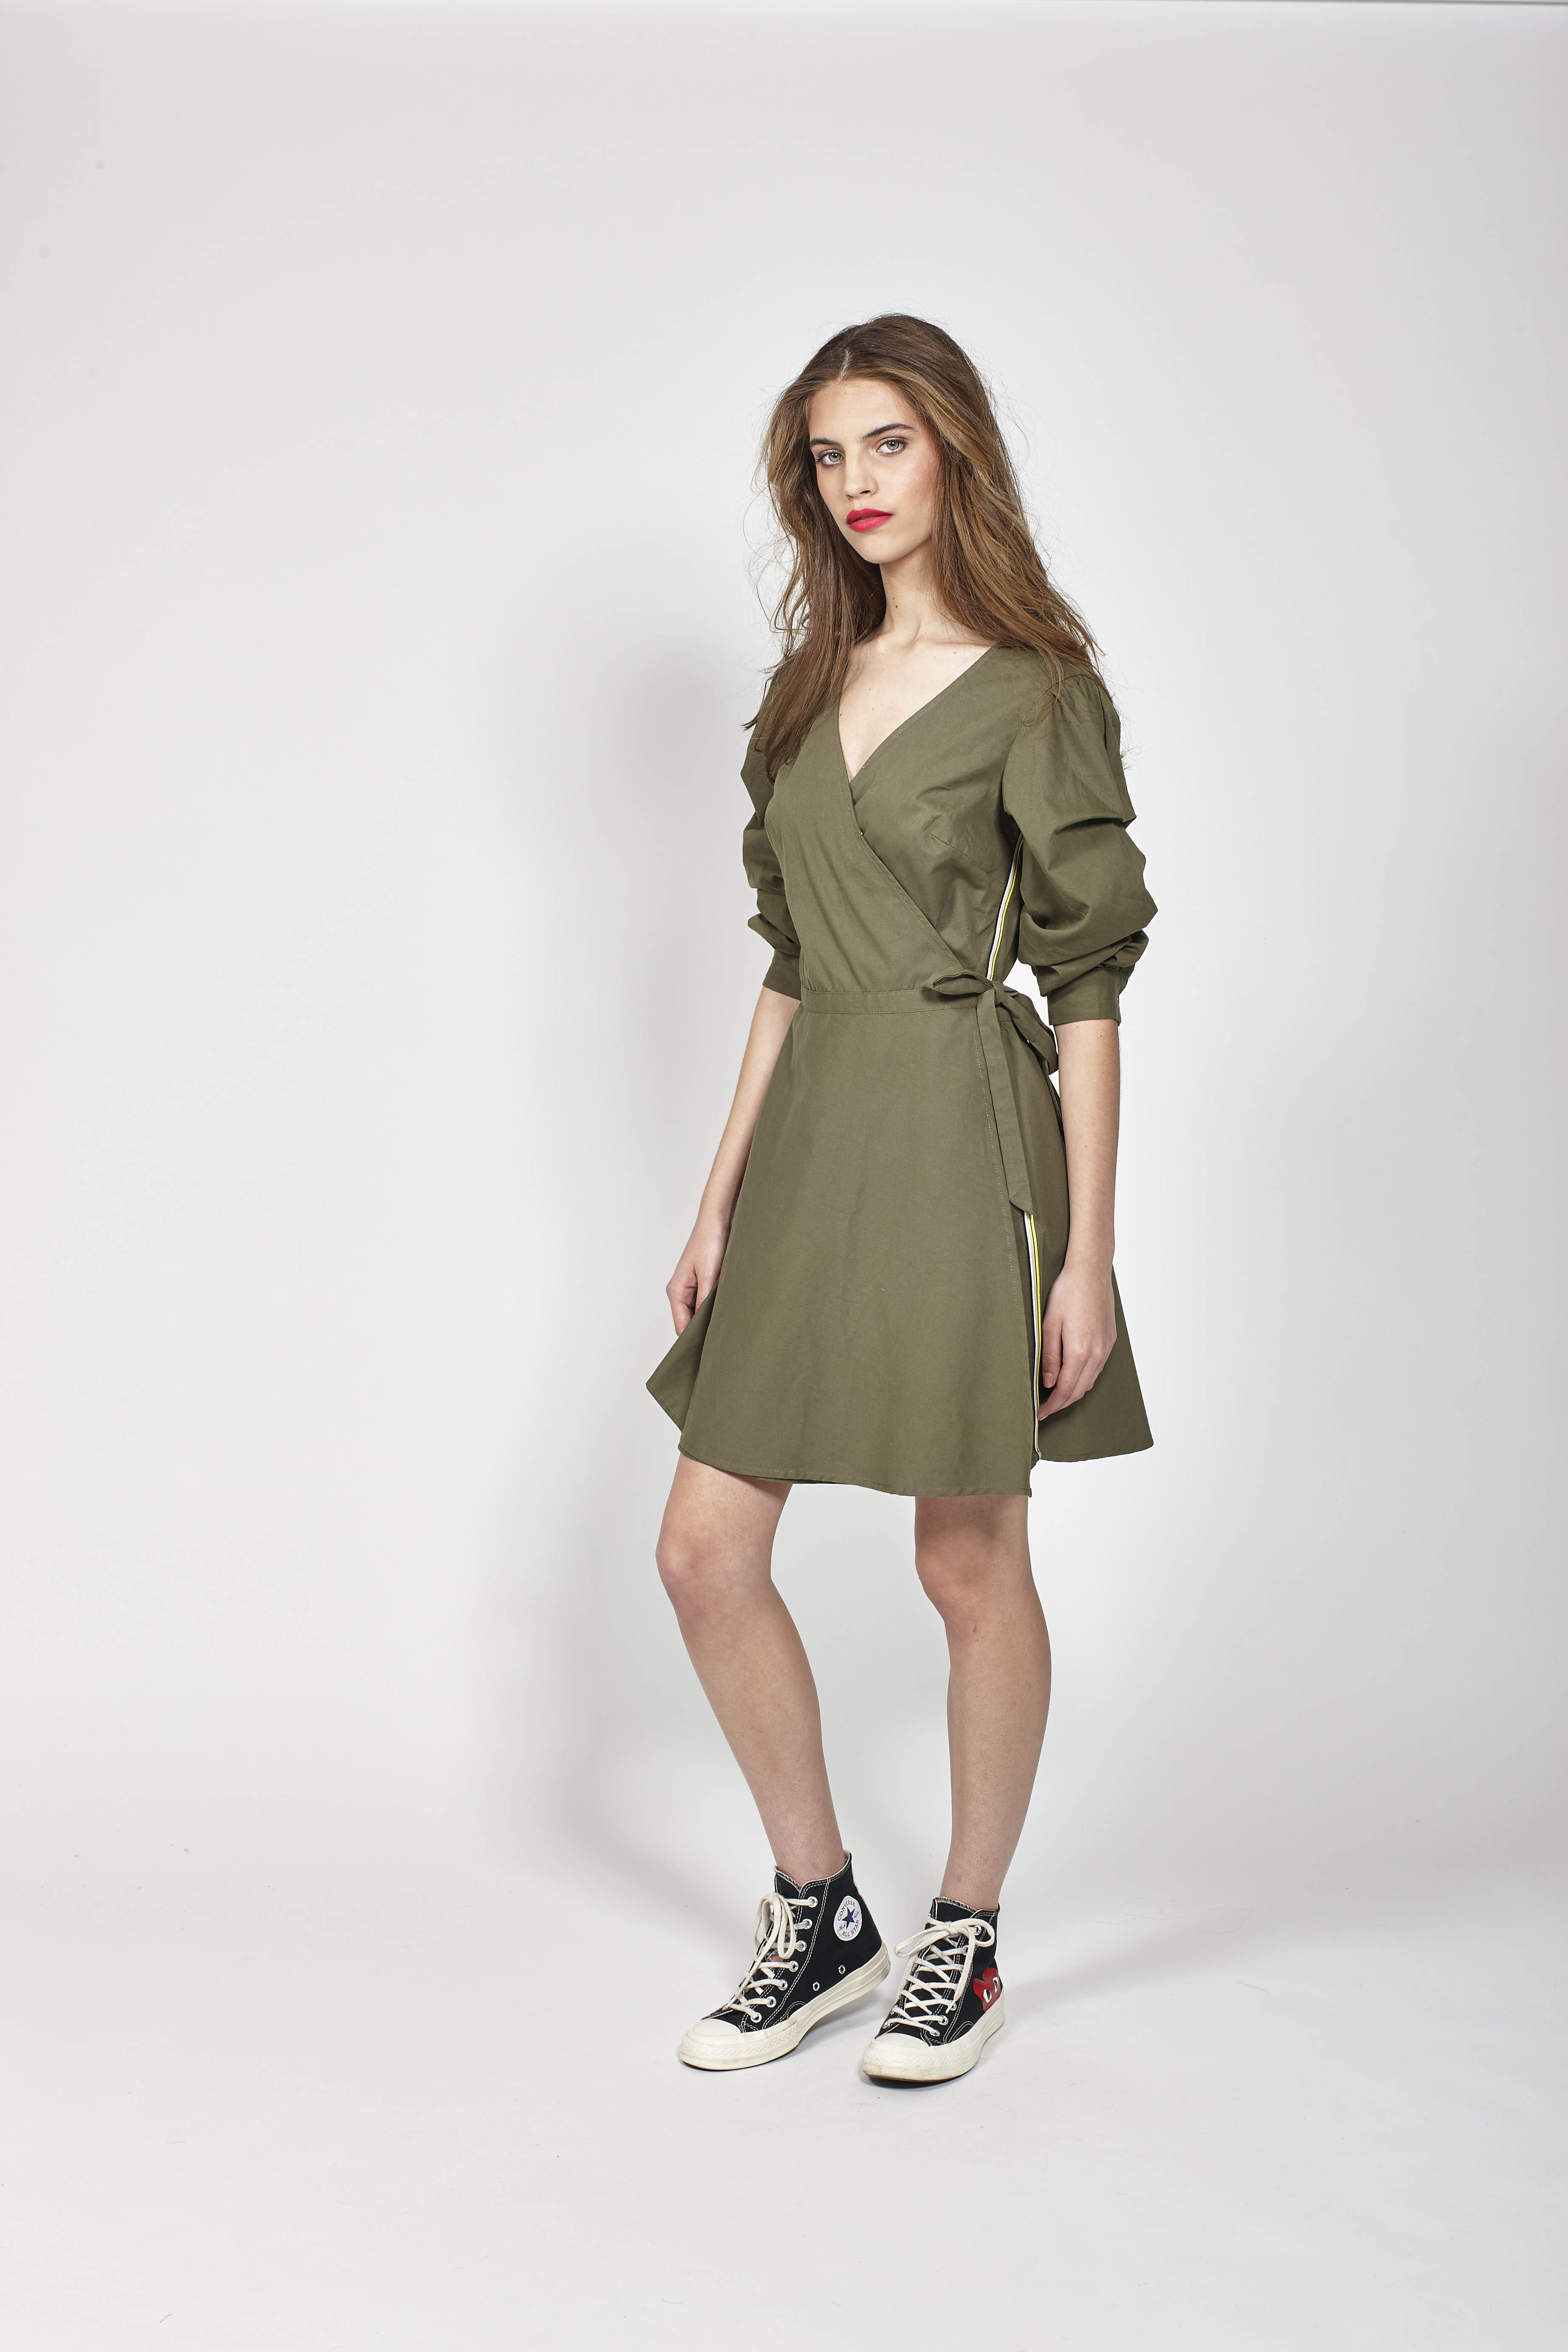 LB1085 LEO+BE Spirit Dress, RRP$188.00